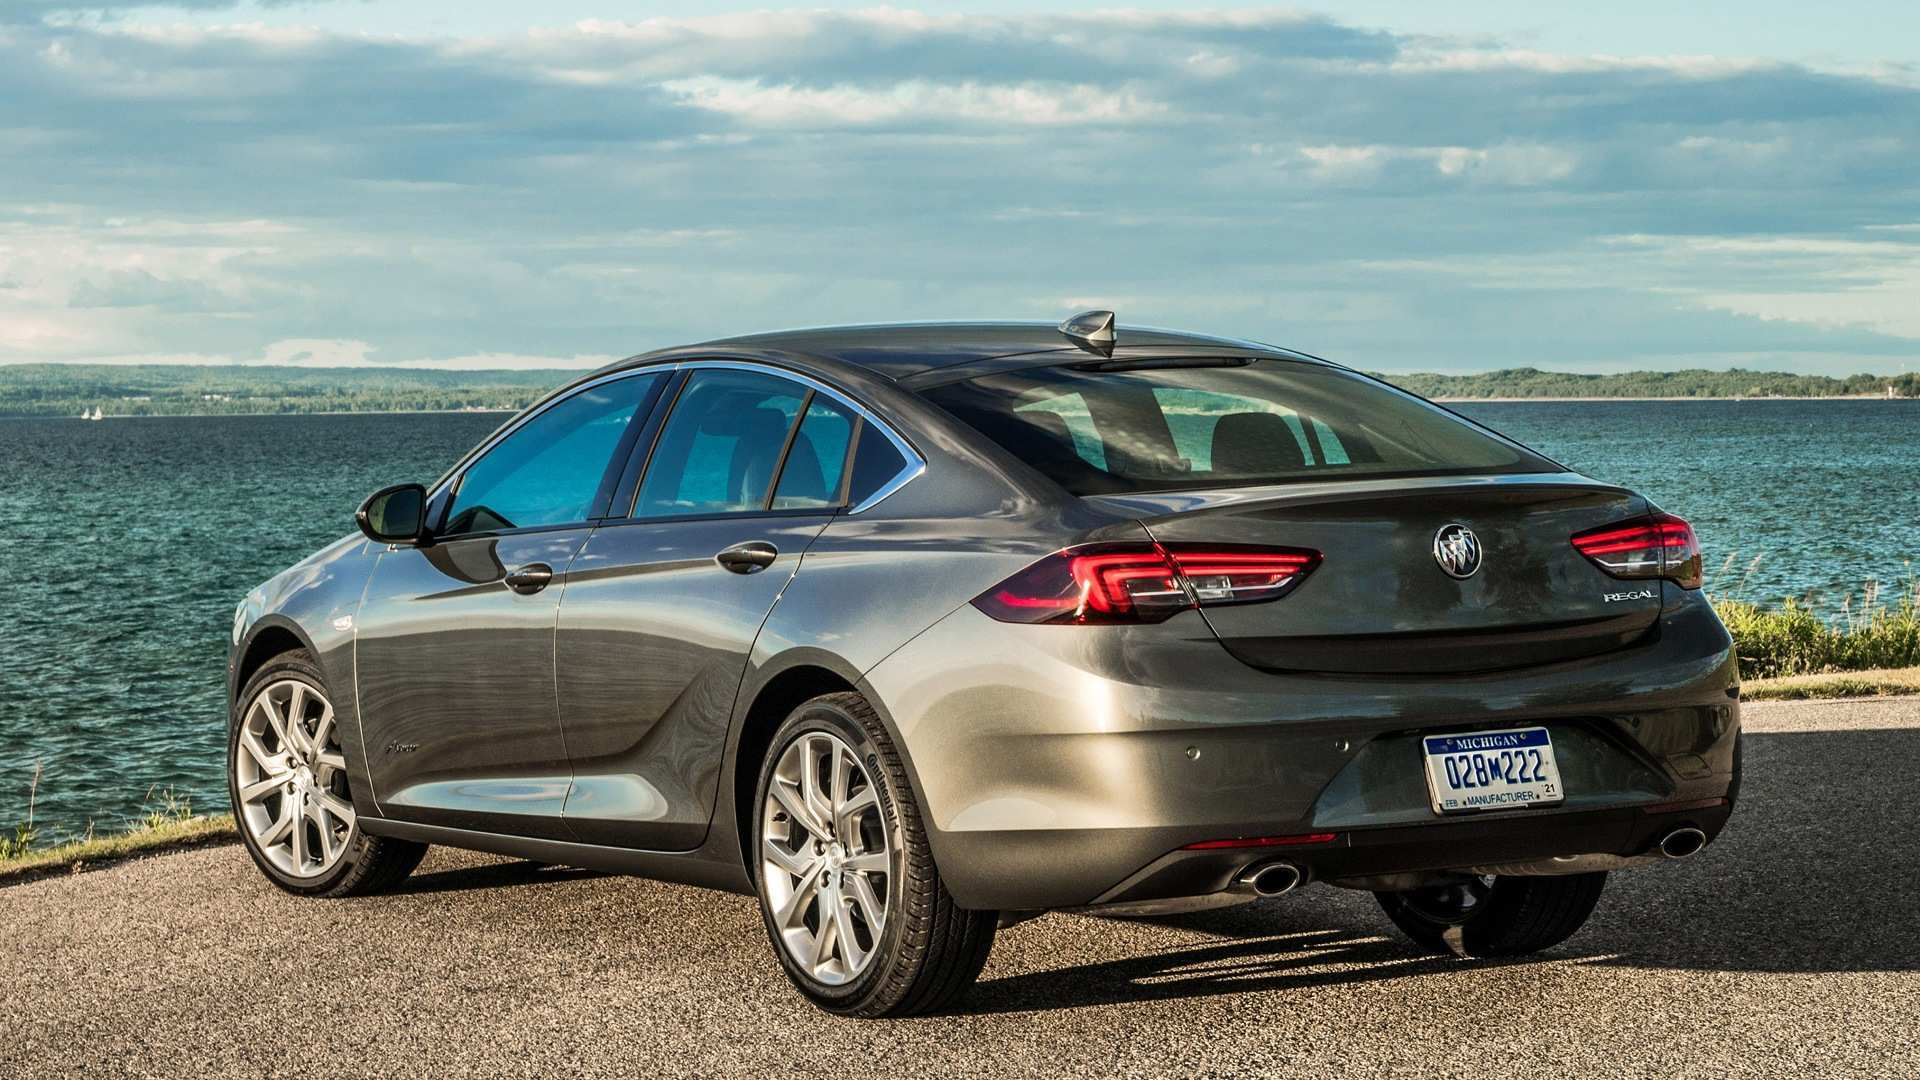 17 Gallery of Buick To Add Regal Sportback Avenir For 2019 Concept Redesign And Review Redesign with Buick To Add Regal Sportback Avenir For 2019 Concept Redesign And Review